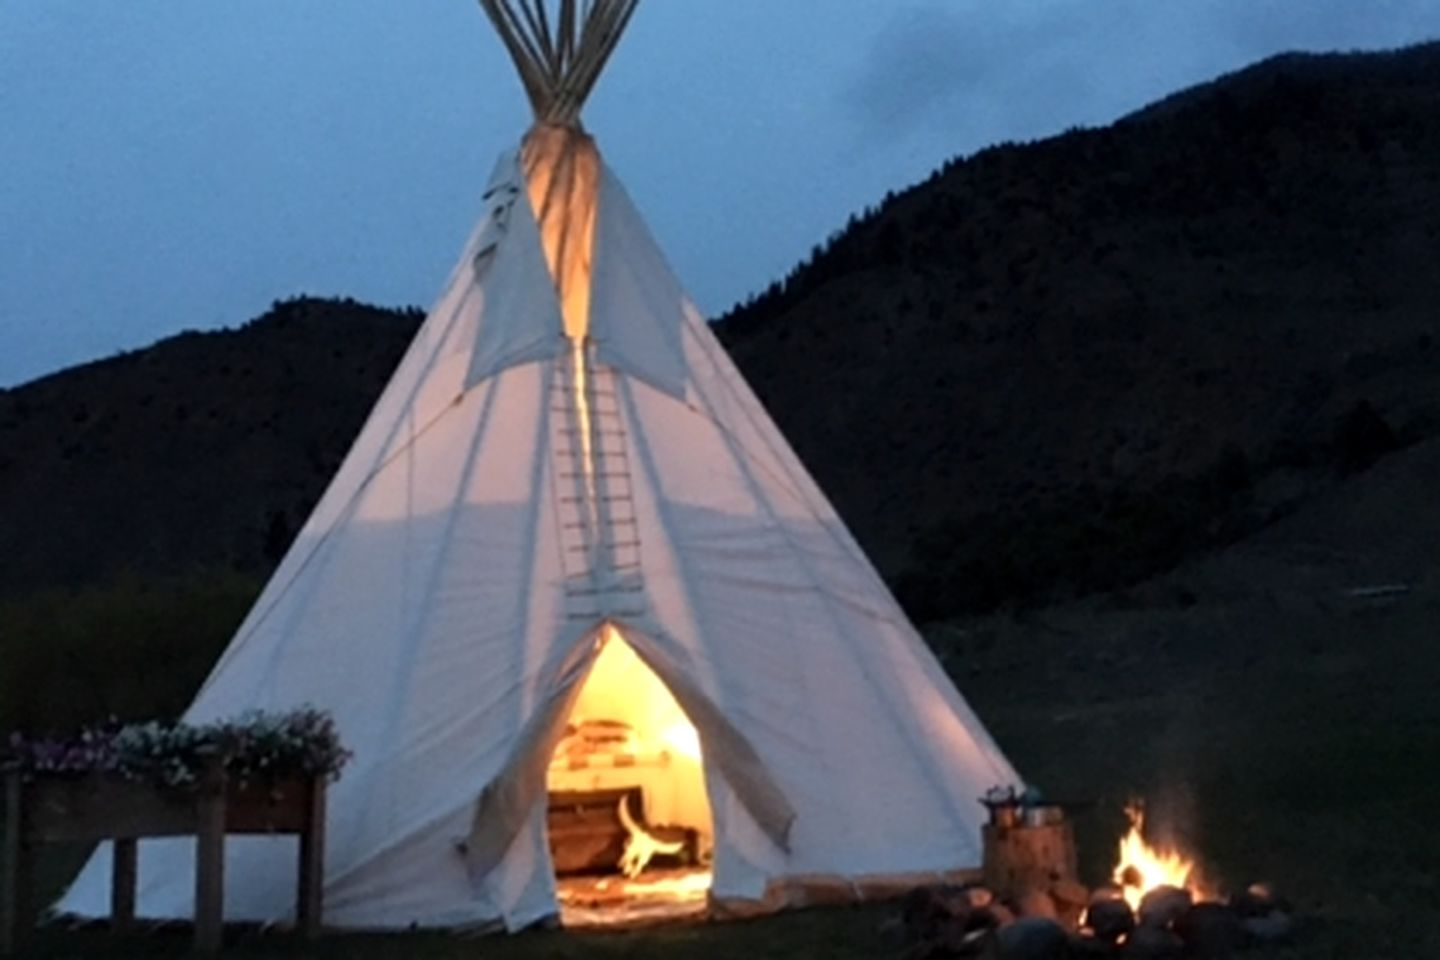 Unique tipi rental in Yellowstone's Boiling River